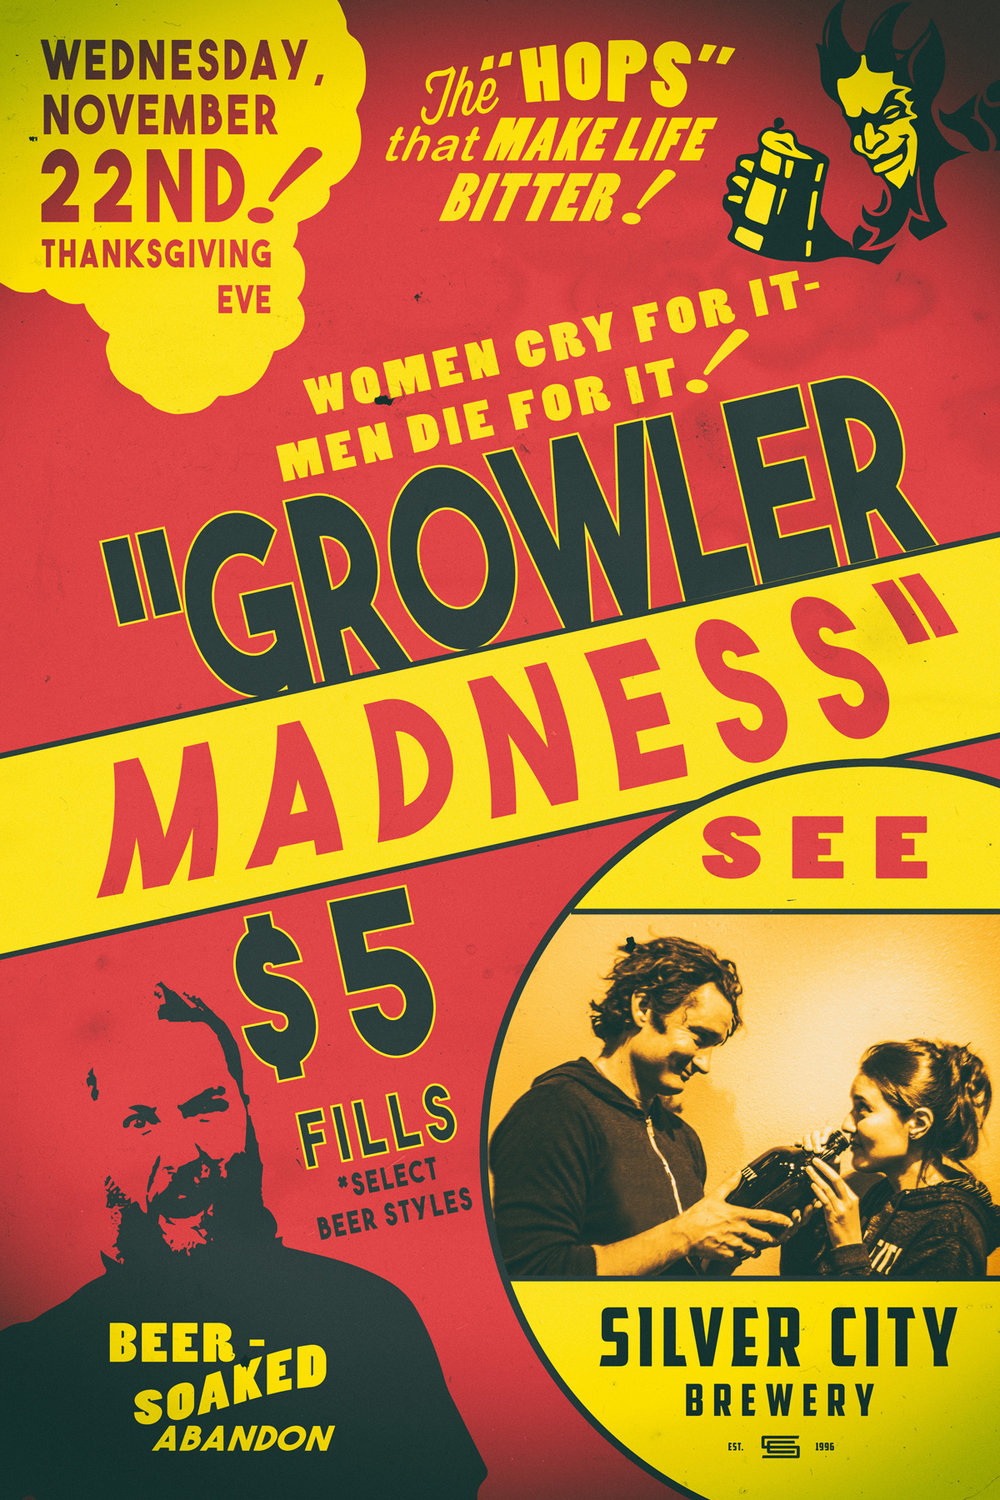 growler-madness-2017.jpg